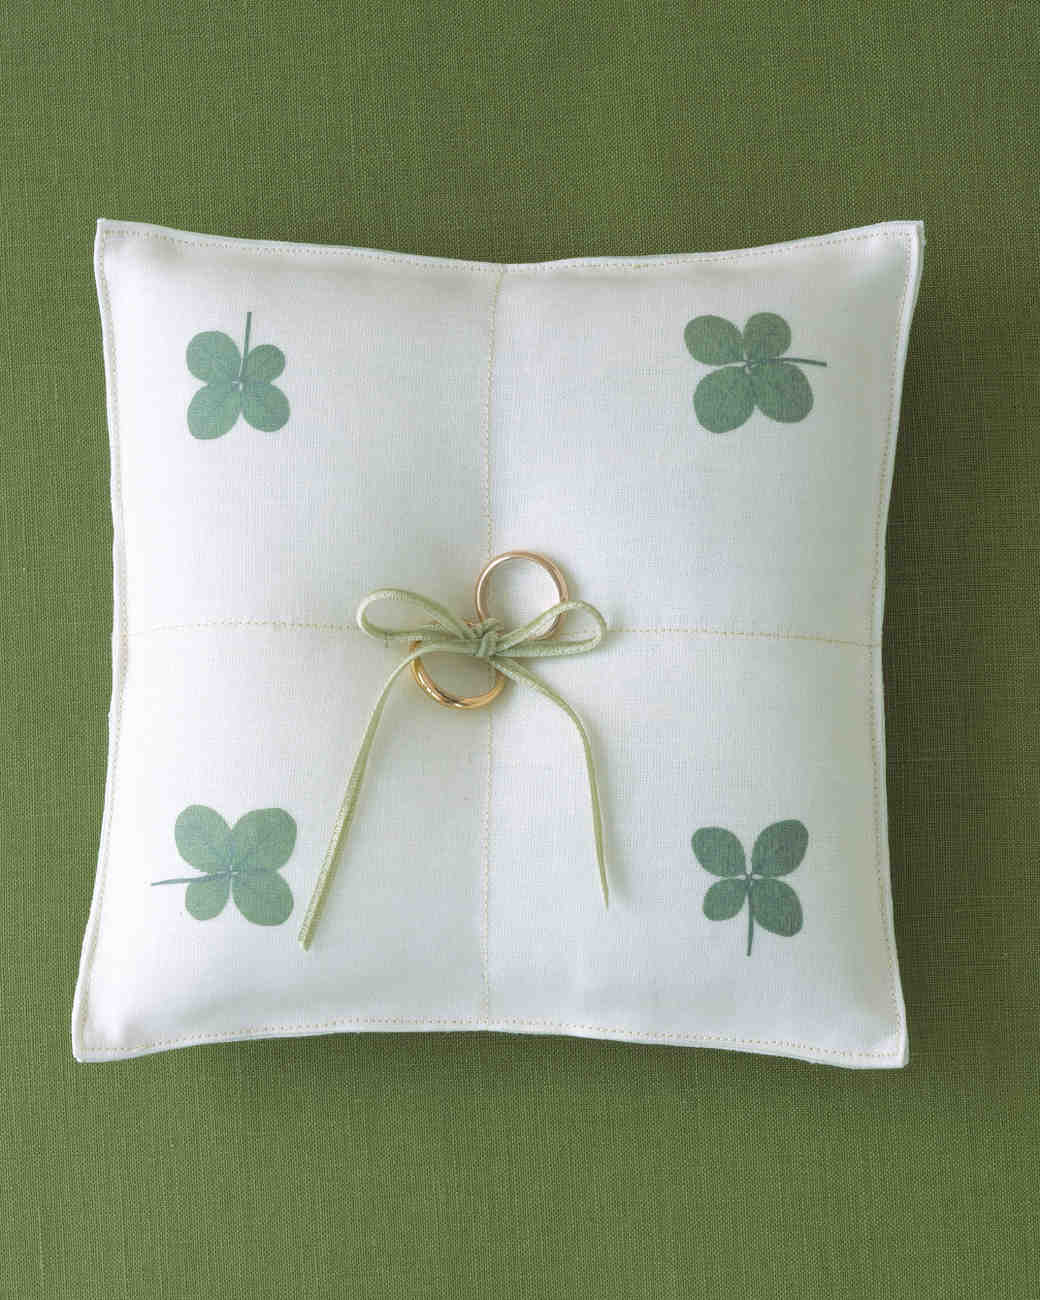 diy-ring-pillows-a99035-clover-0515.jpg